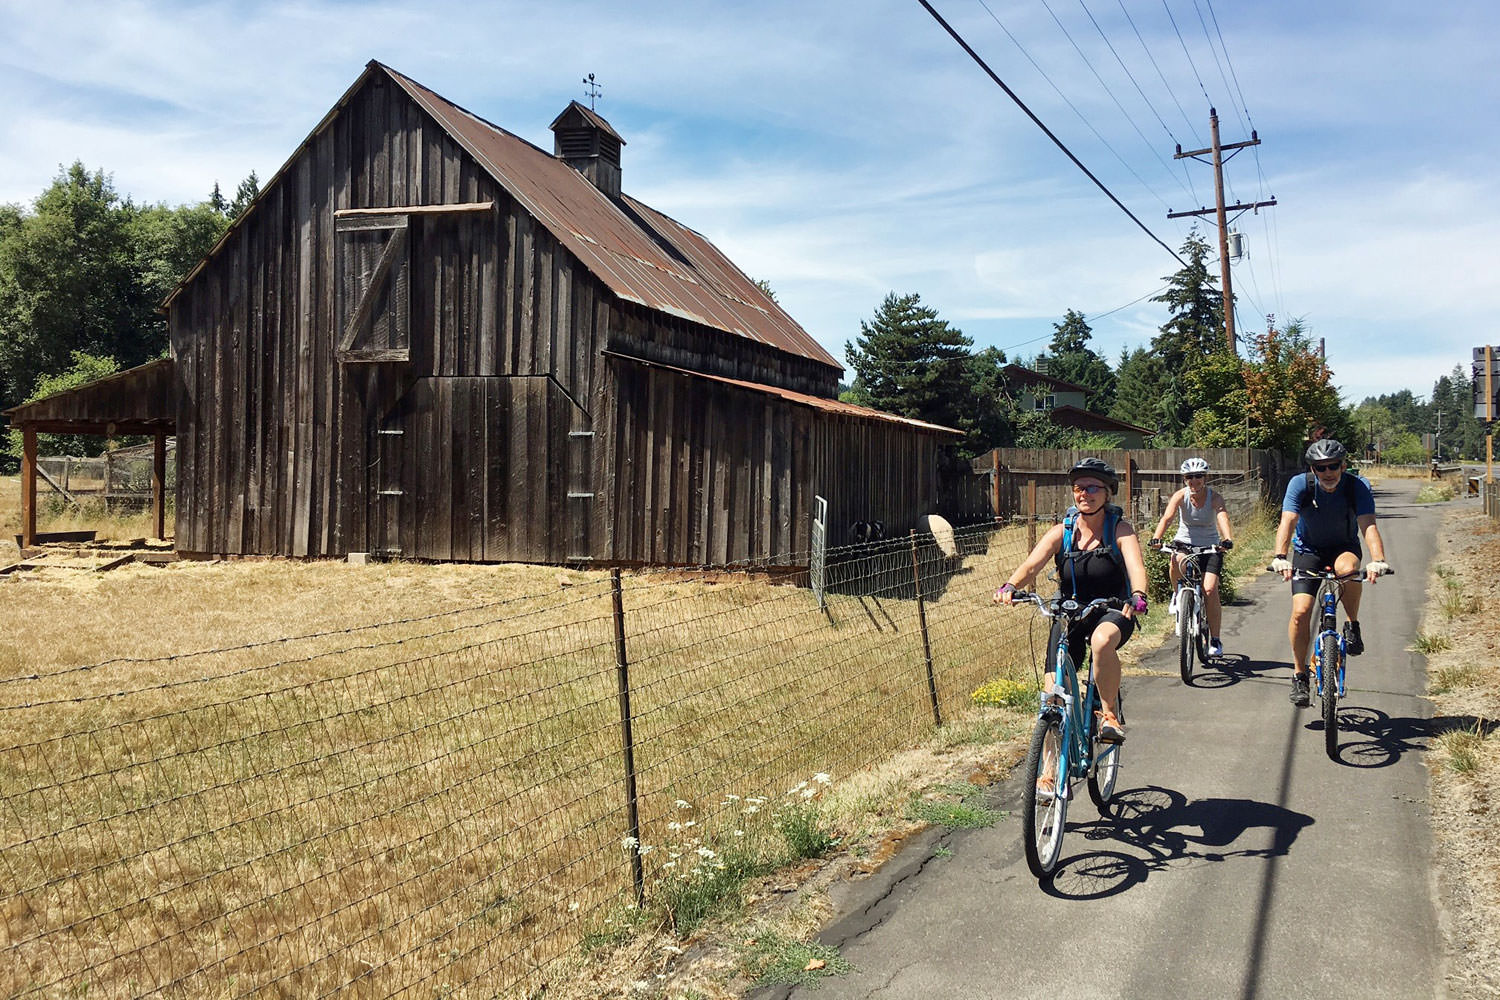 Three cyclists pedal down a paved path past an old wooden farmhouse.